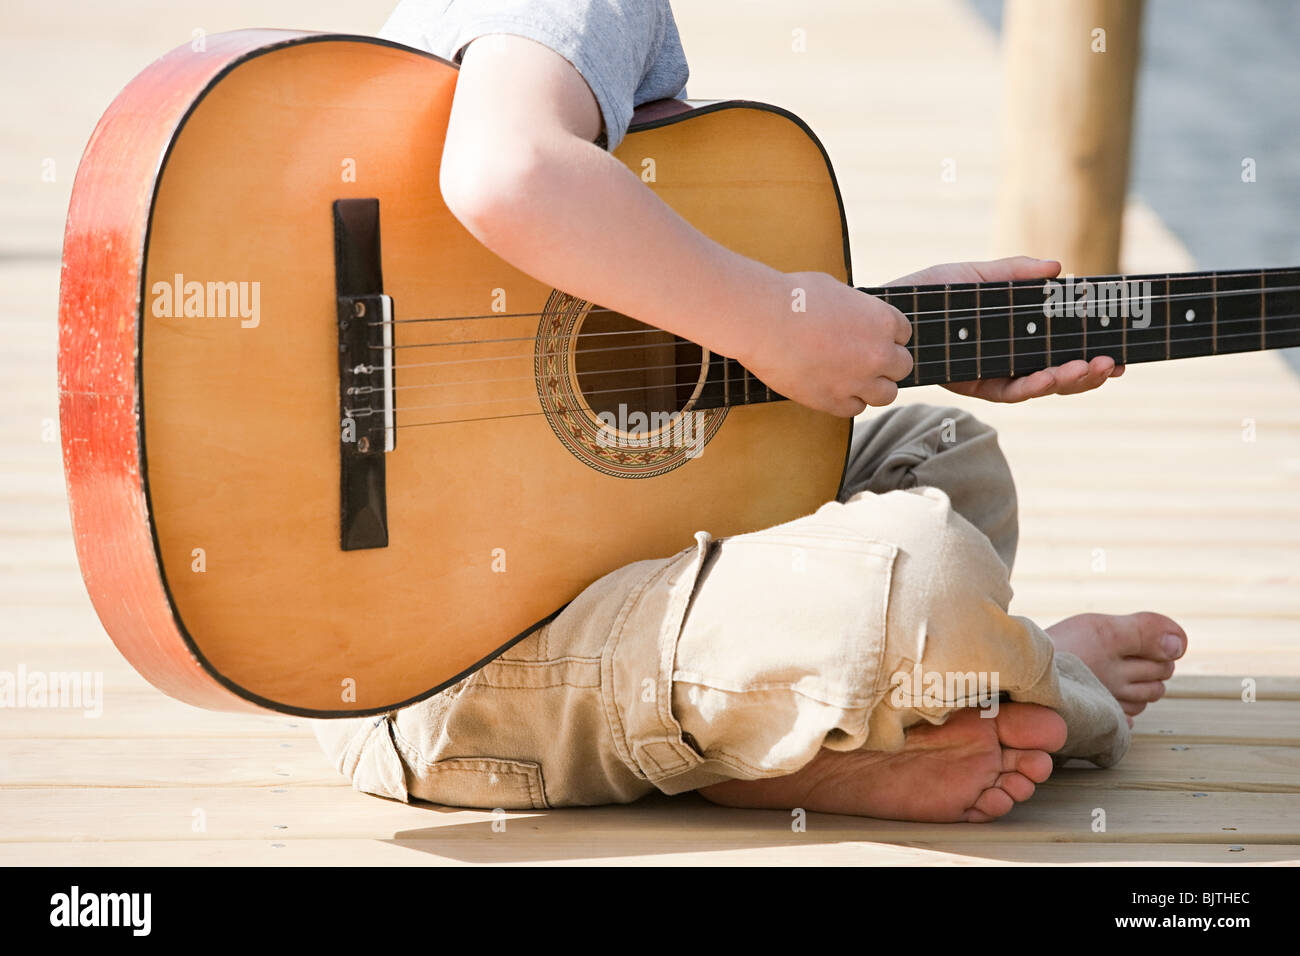 Boy playing guitar - Stock Image